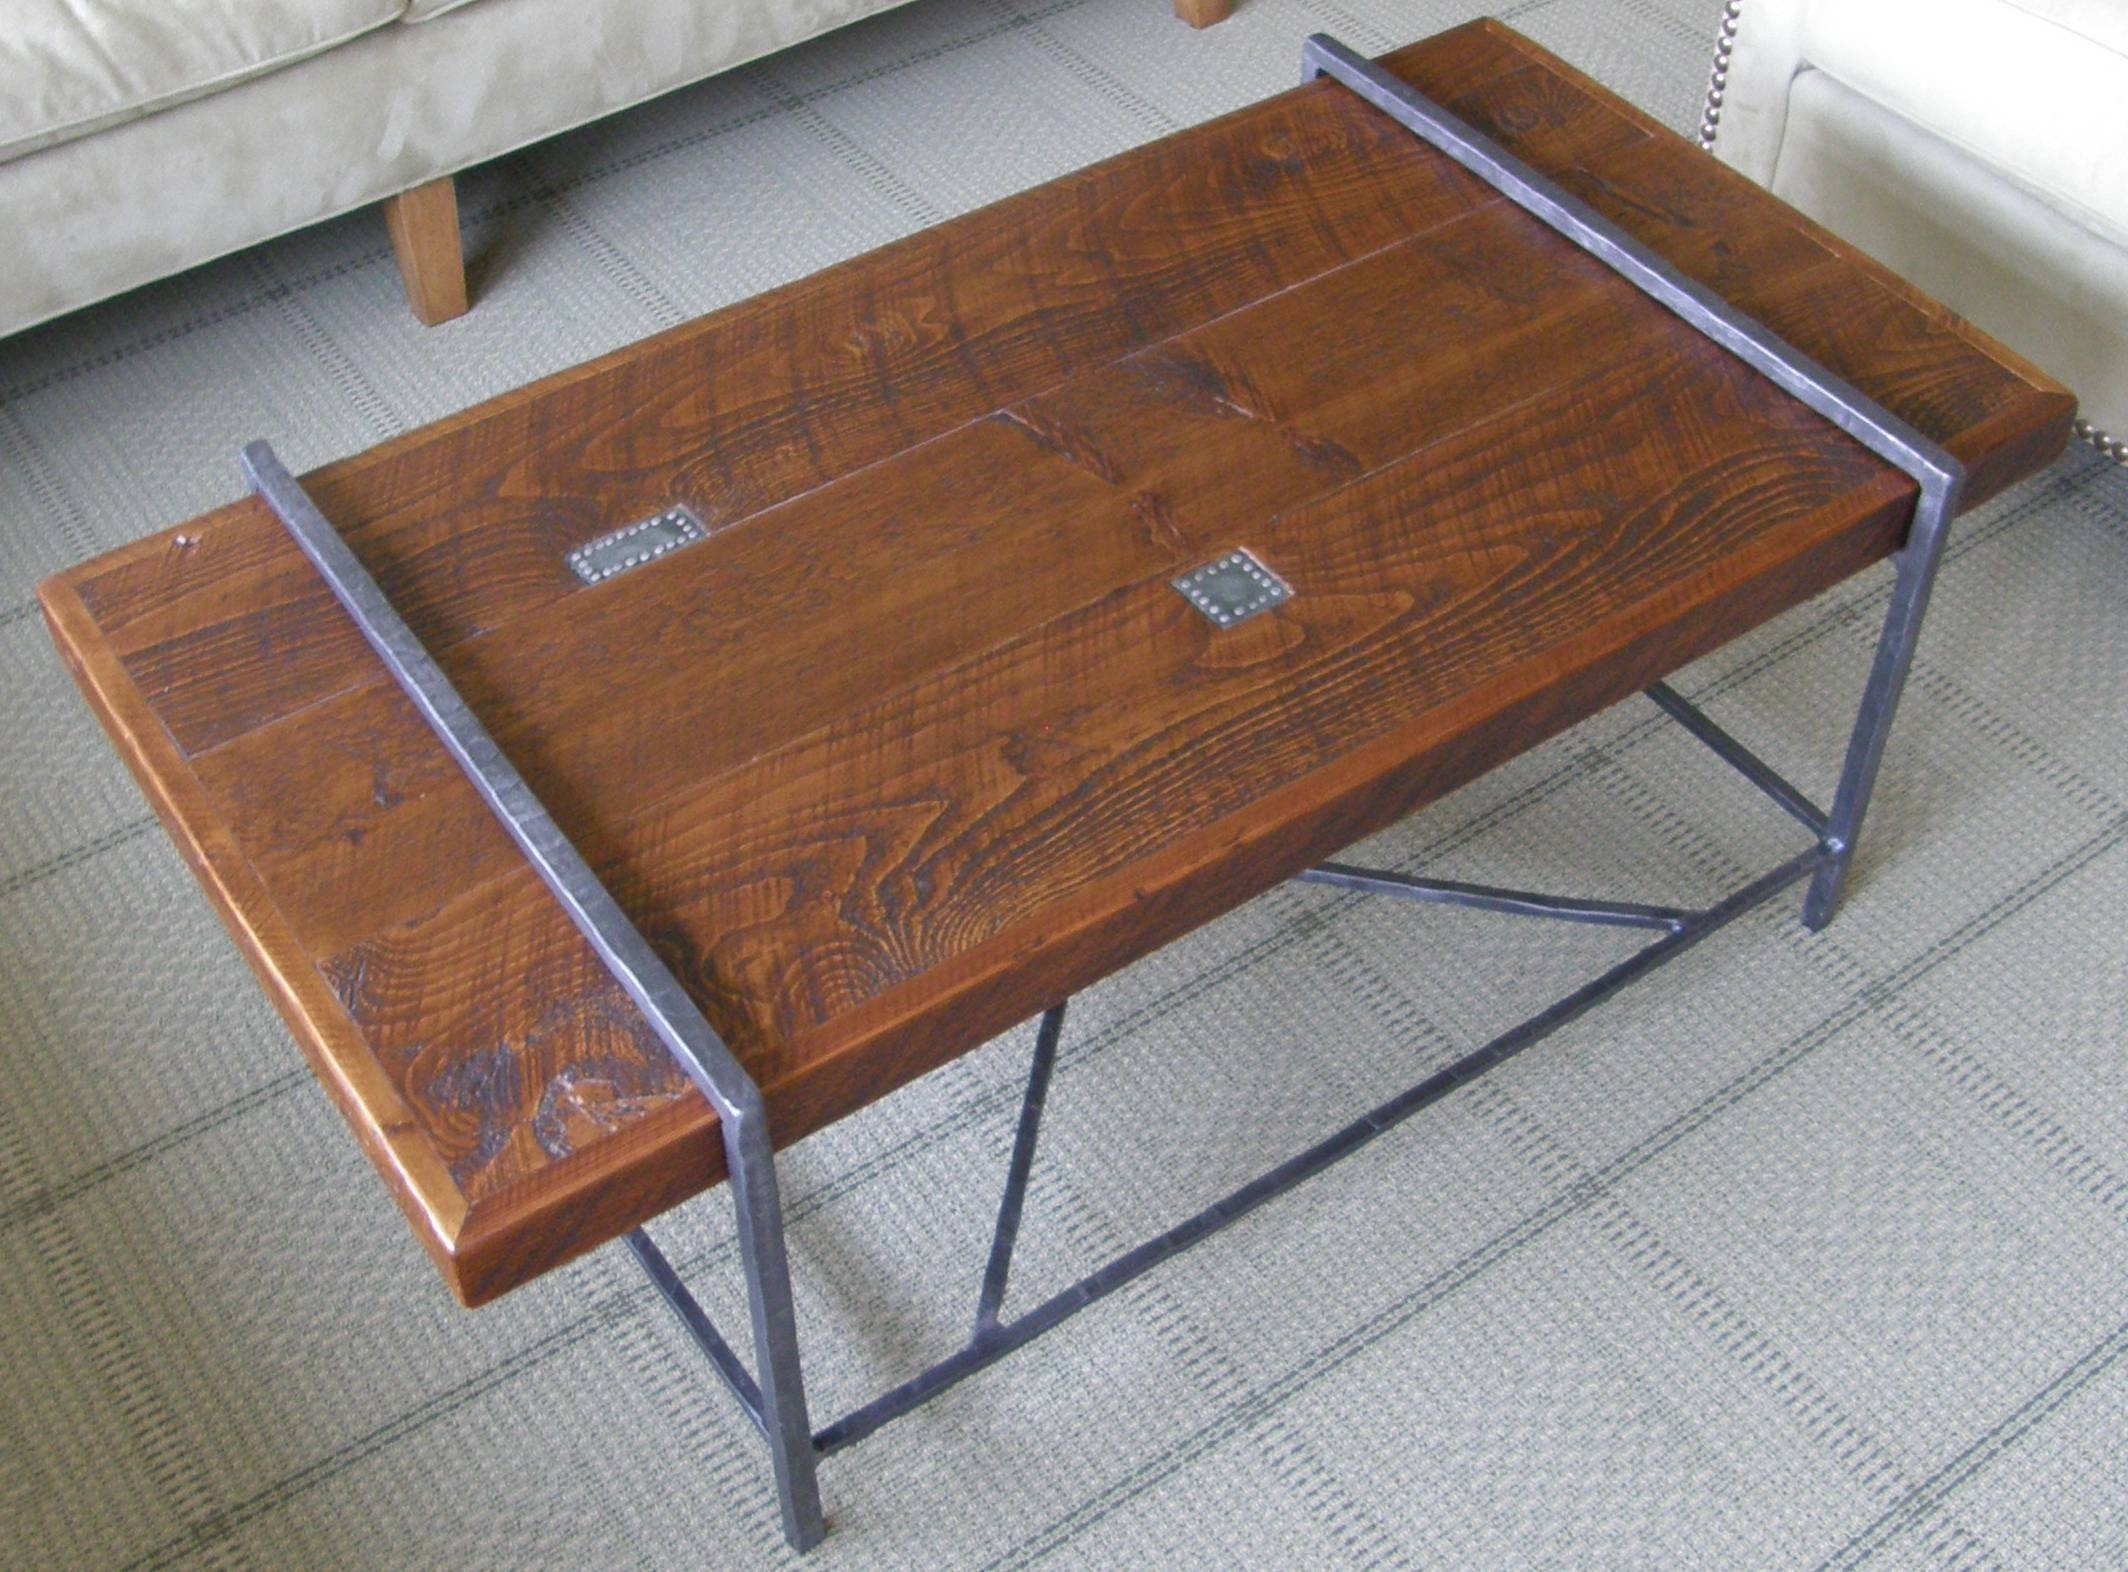 Reclaimed Wood Coffee Table Top With Metal Base - Youtube with regard to Wood And Steel Coffee Table (Image 11 of 15)